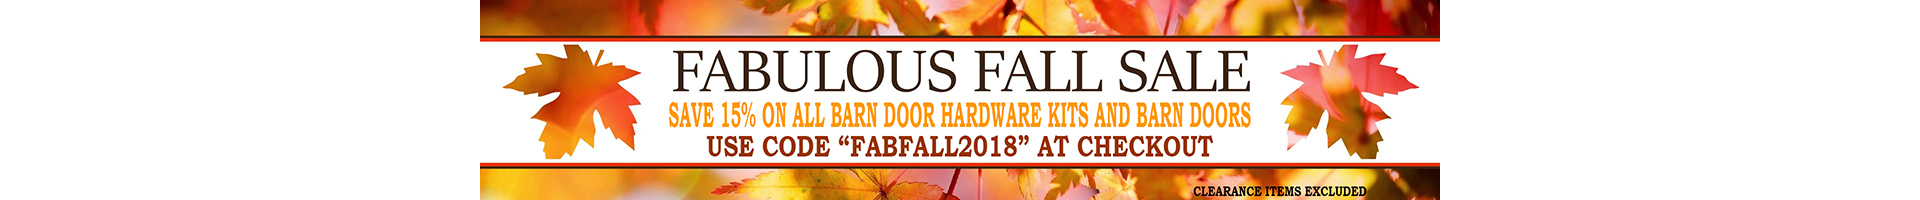 fab-fall-sale-banner-small-1920.jpg